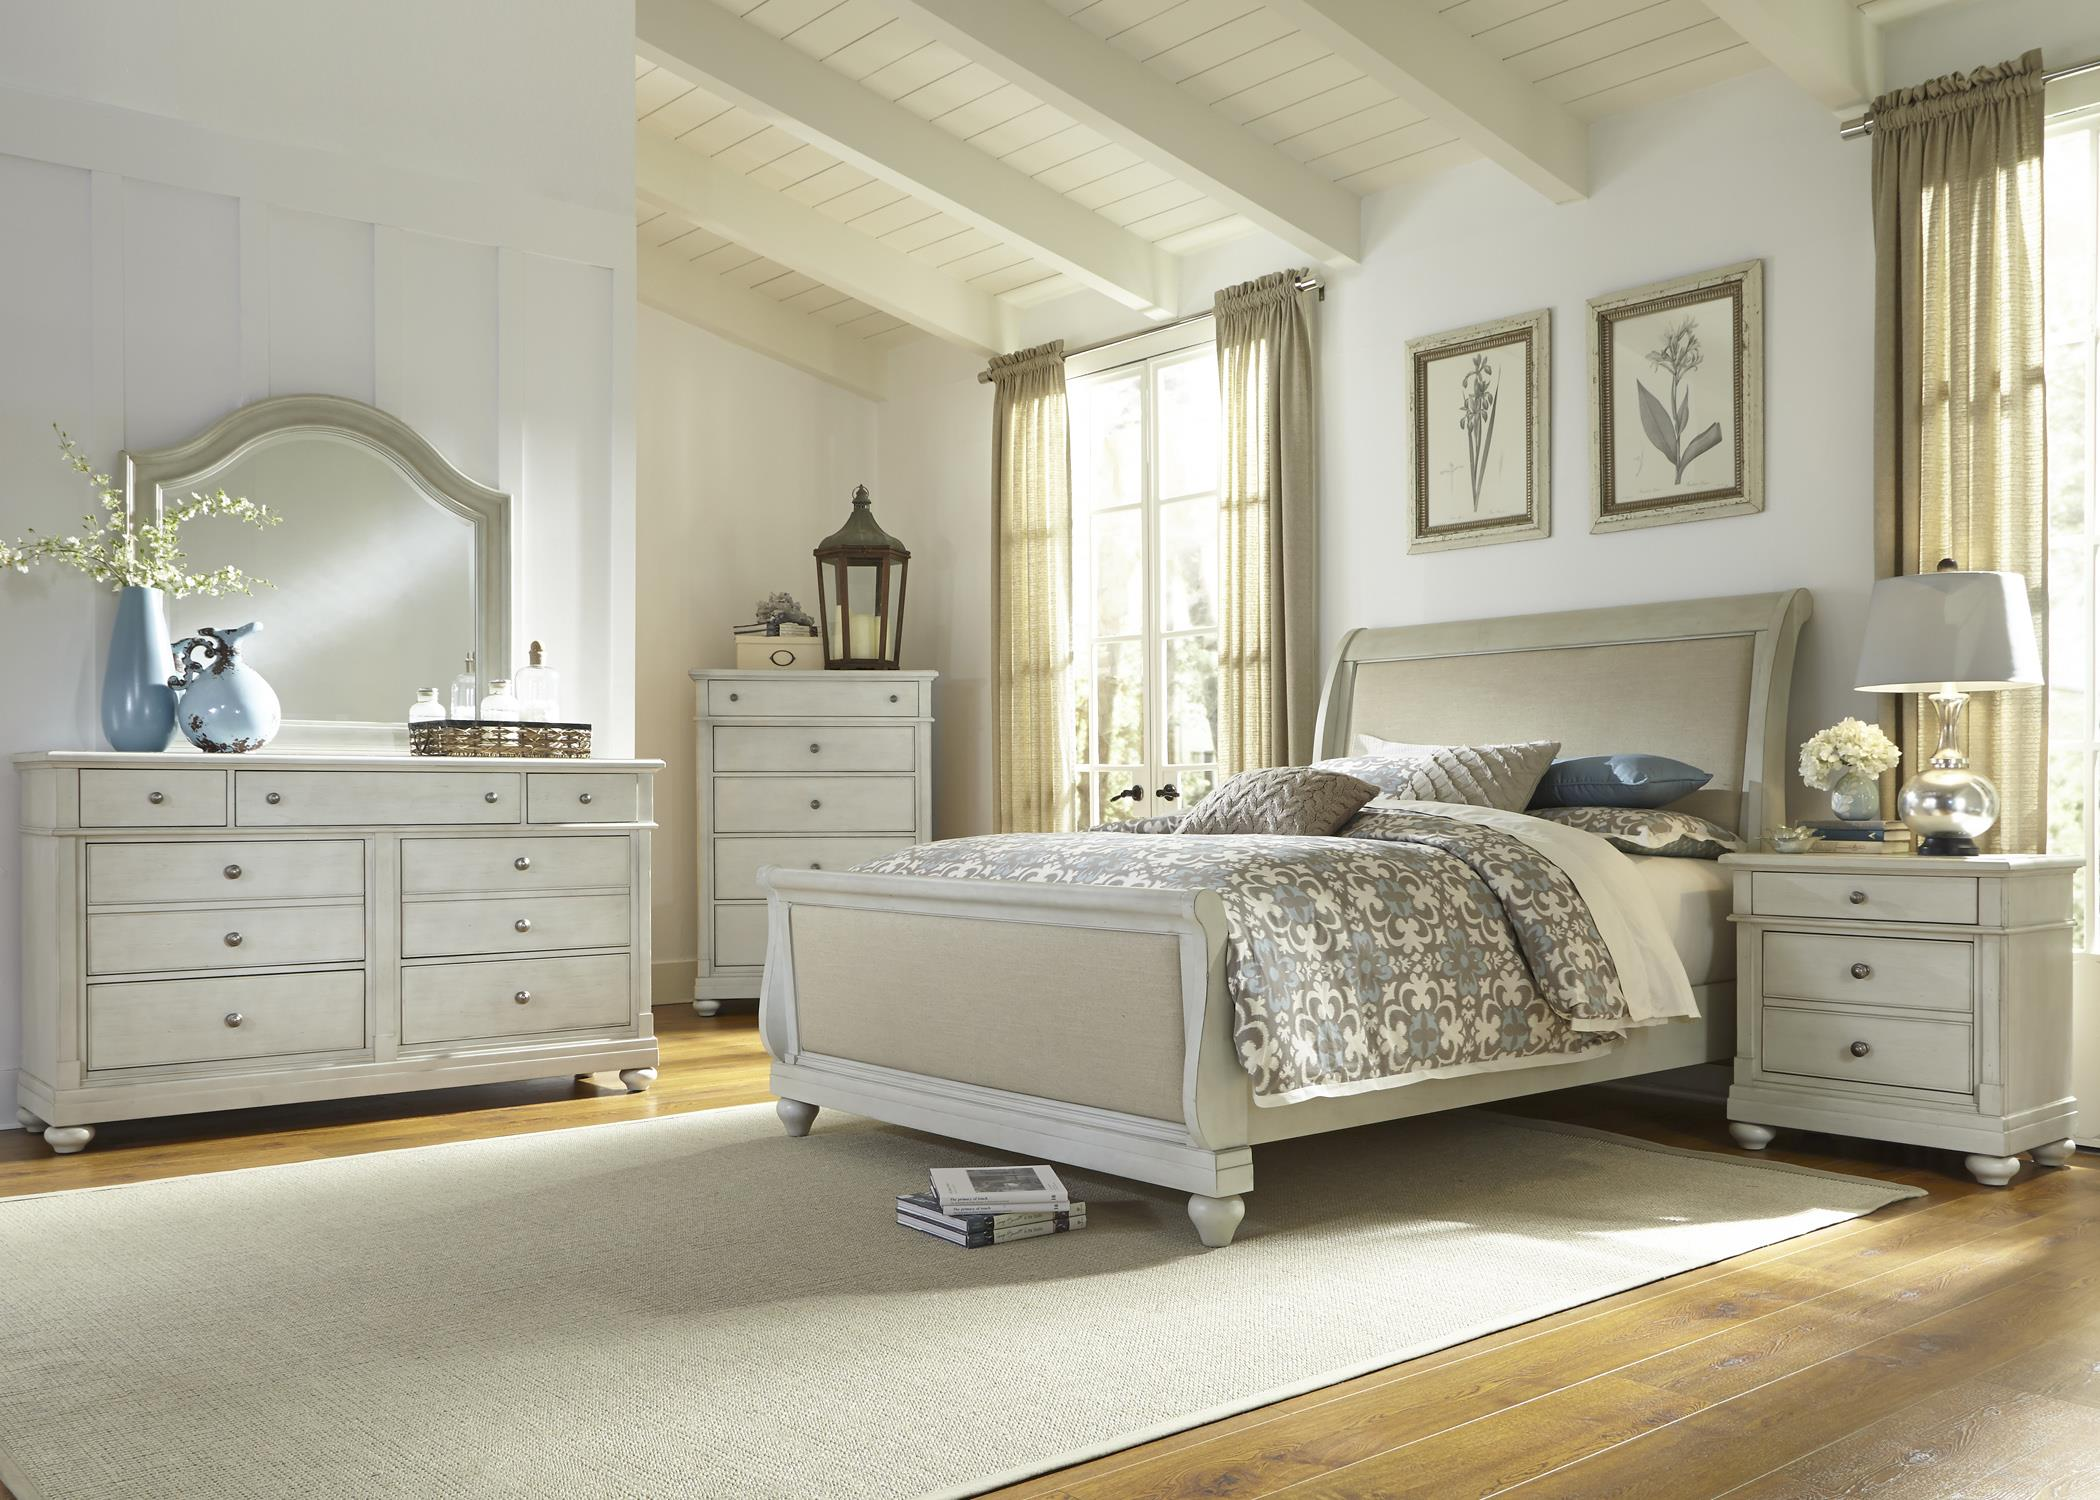 Liberty Furniture Harbor View Queen Bedroom Group - Item Number: 731-BR-QSLDMCN